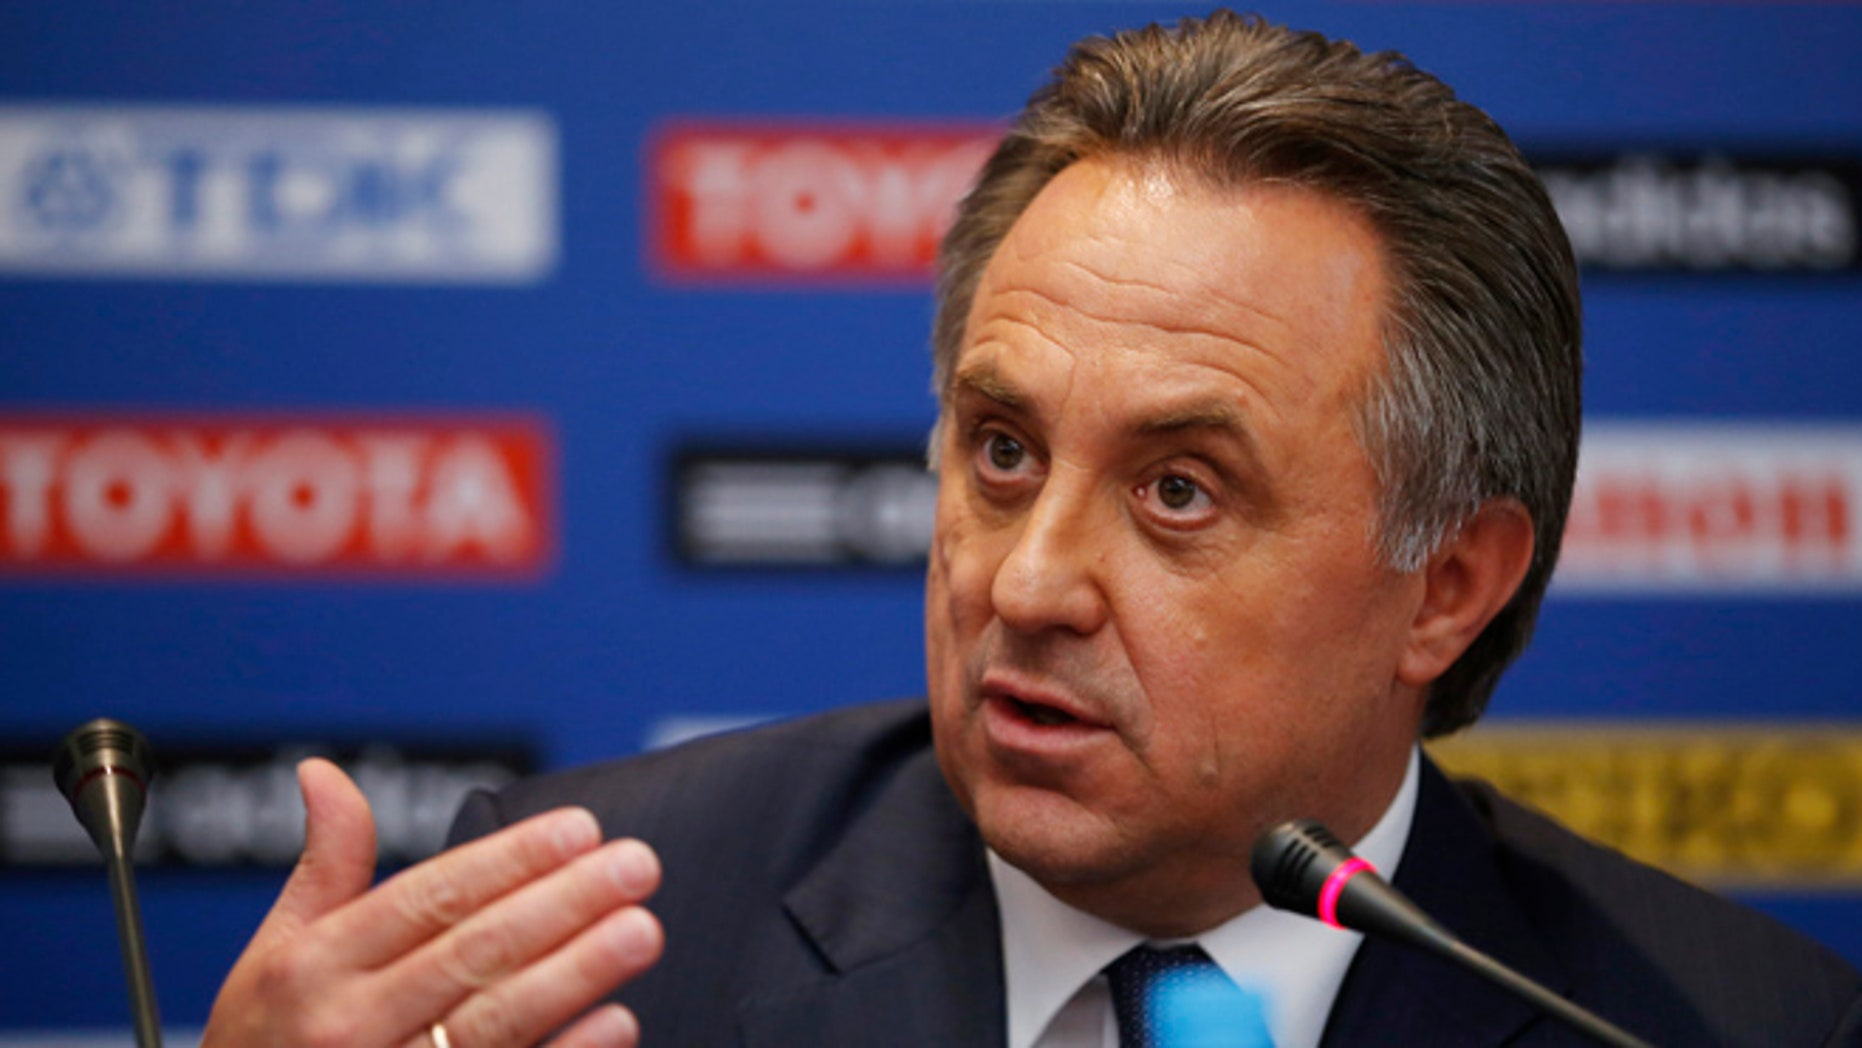 Aug. 8, 2013: In this file photo, Russian sports minister Vitaly Mutko speaks during a news conference at a hotel in Moscow ahead of the IAAF athletics World Championships.